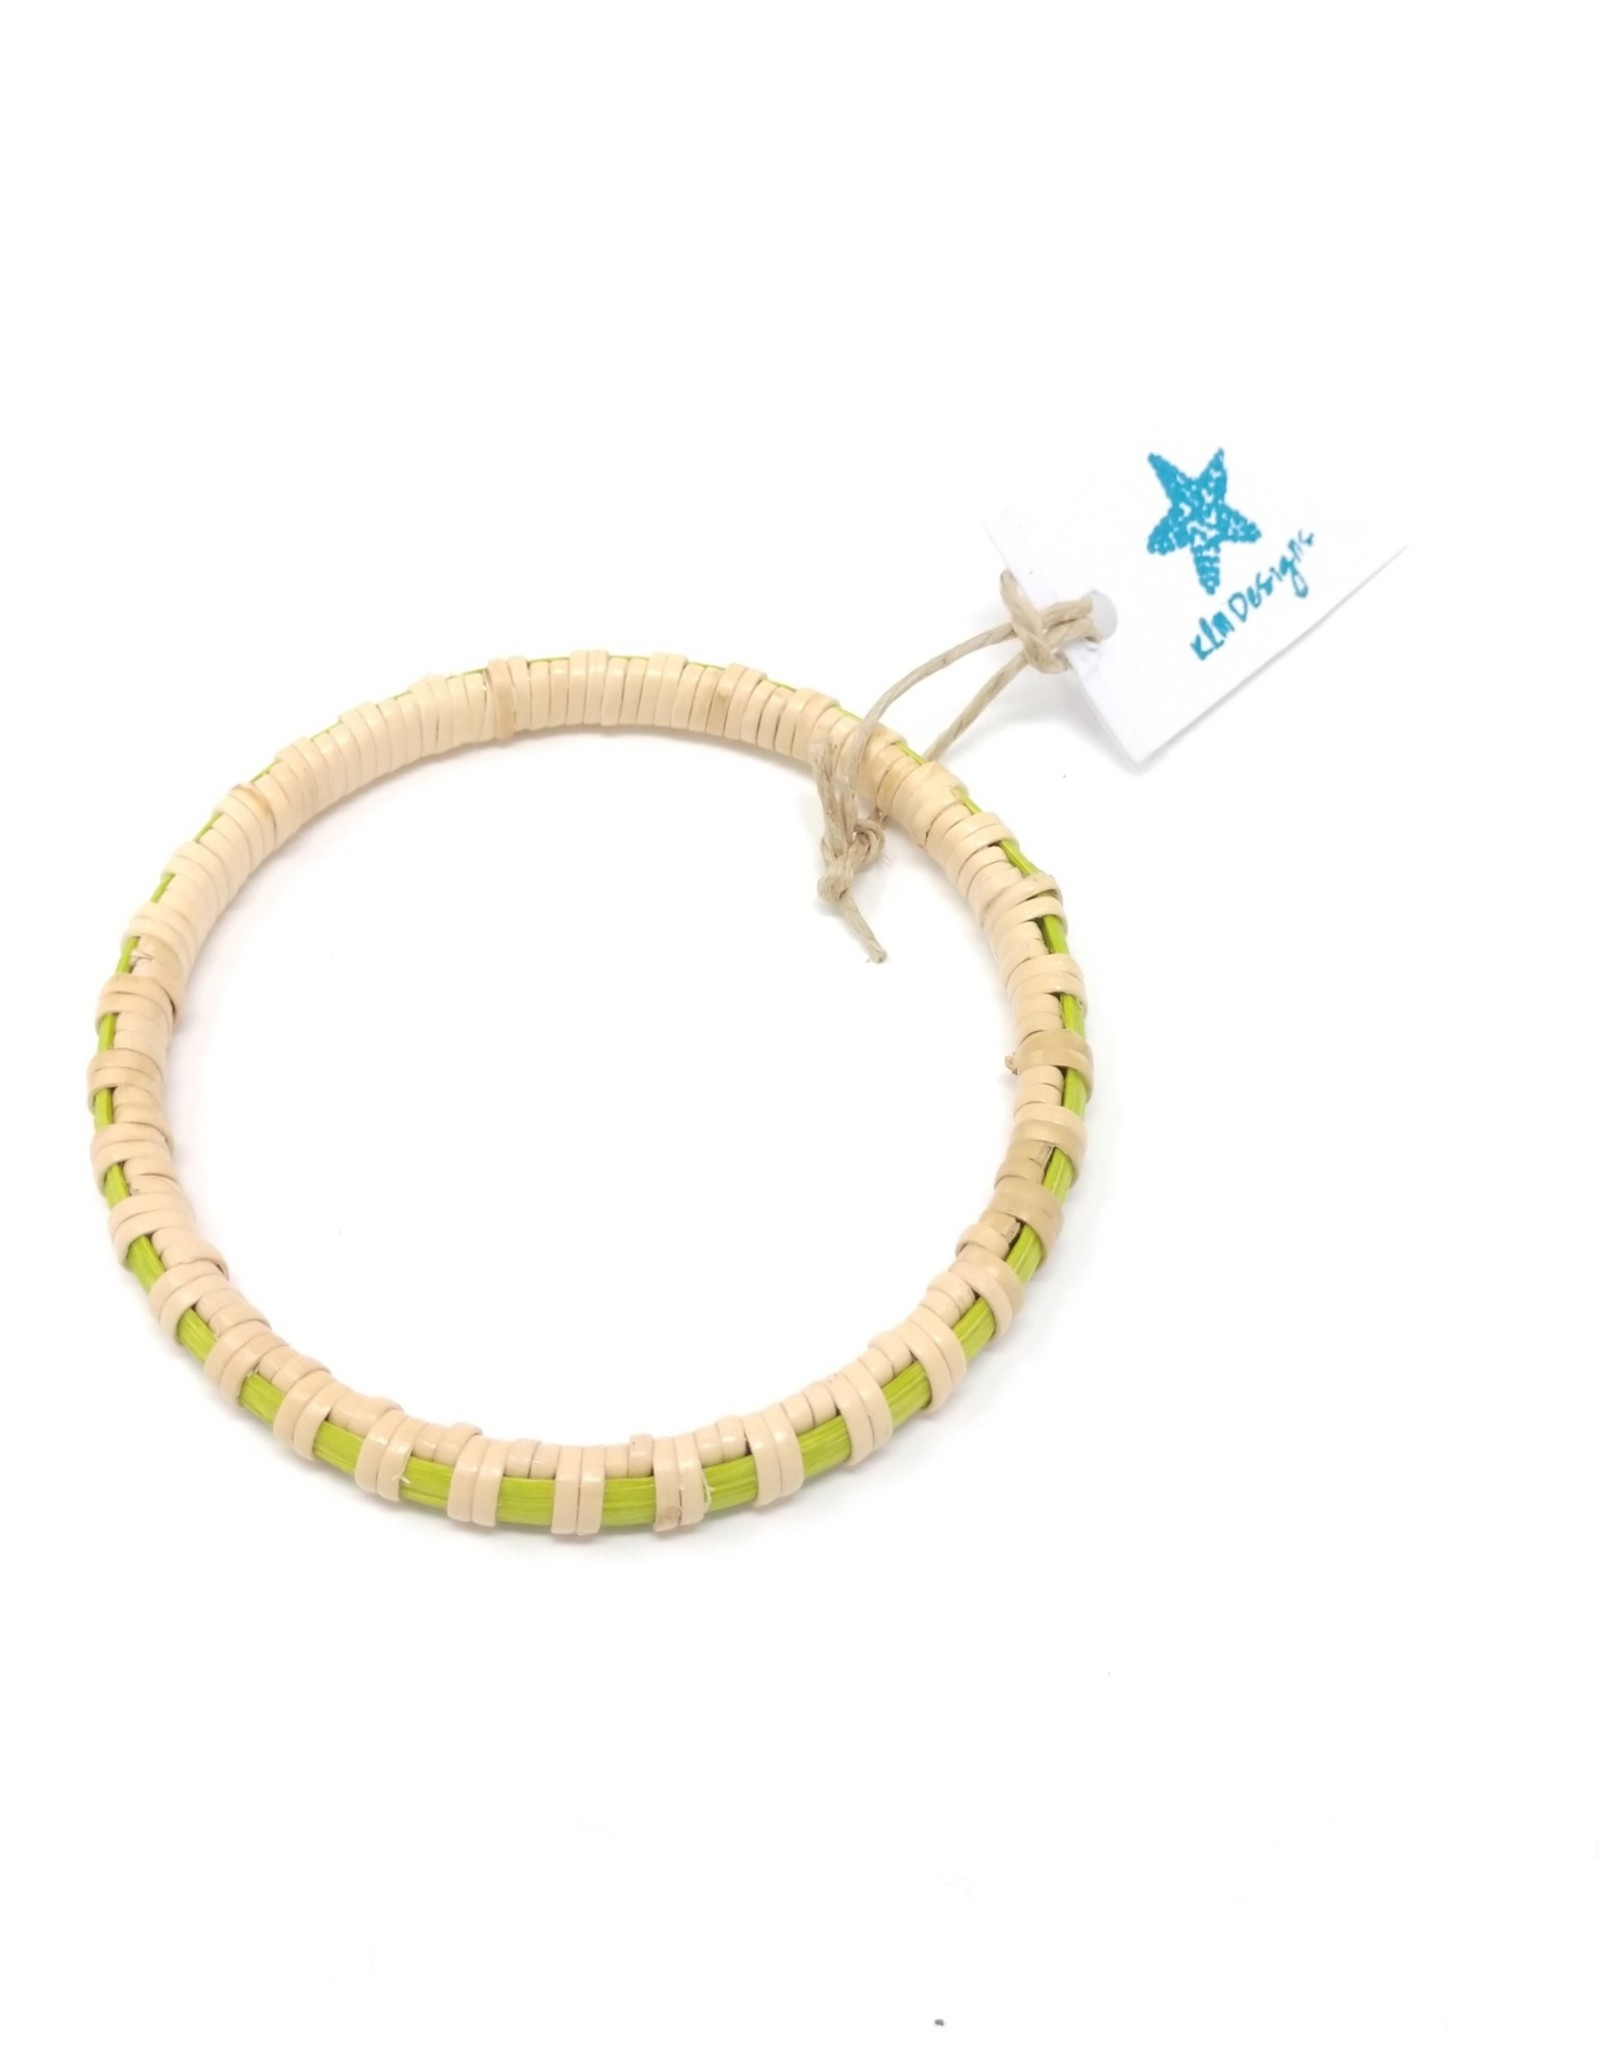 KLM Designs KLM Designs - Surfside Bangle Lime